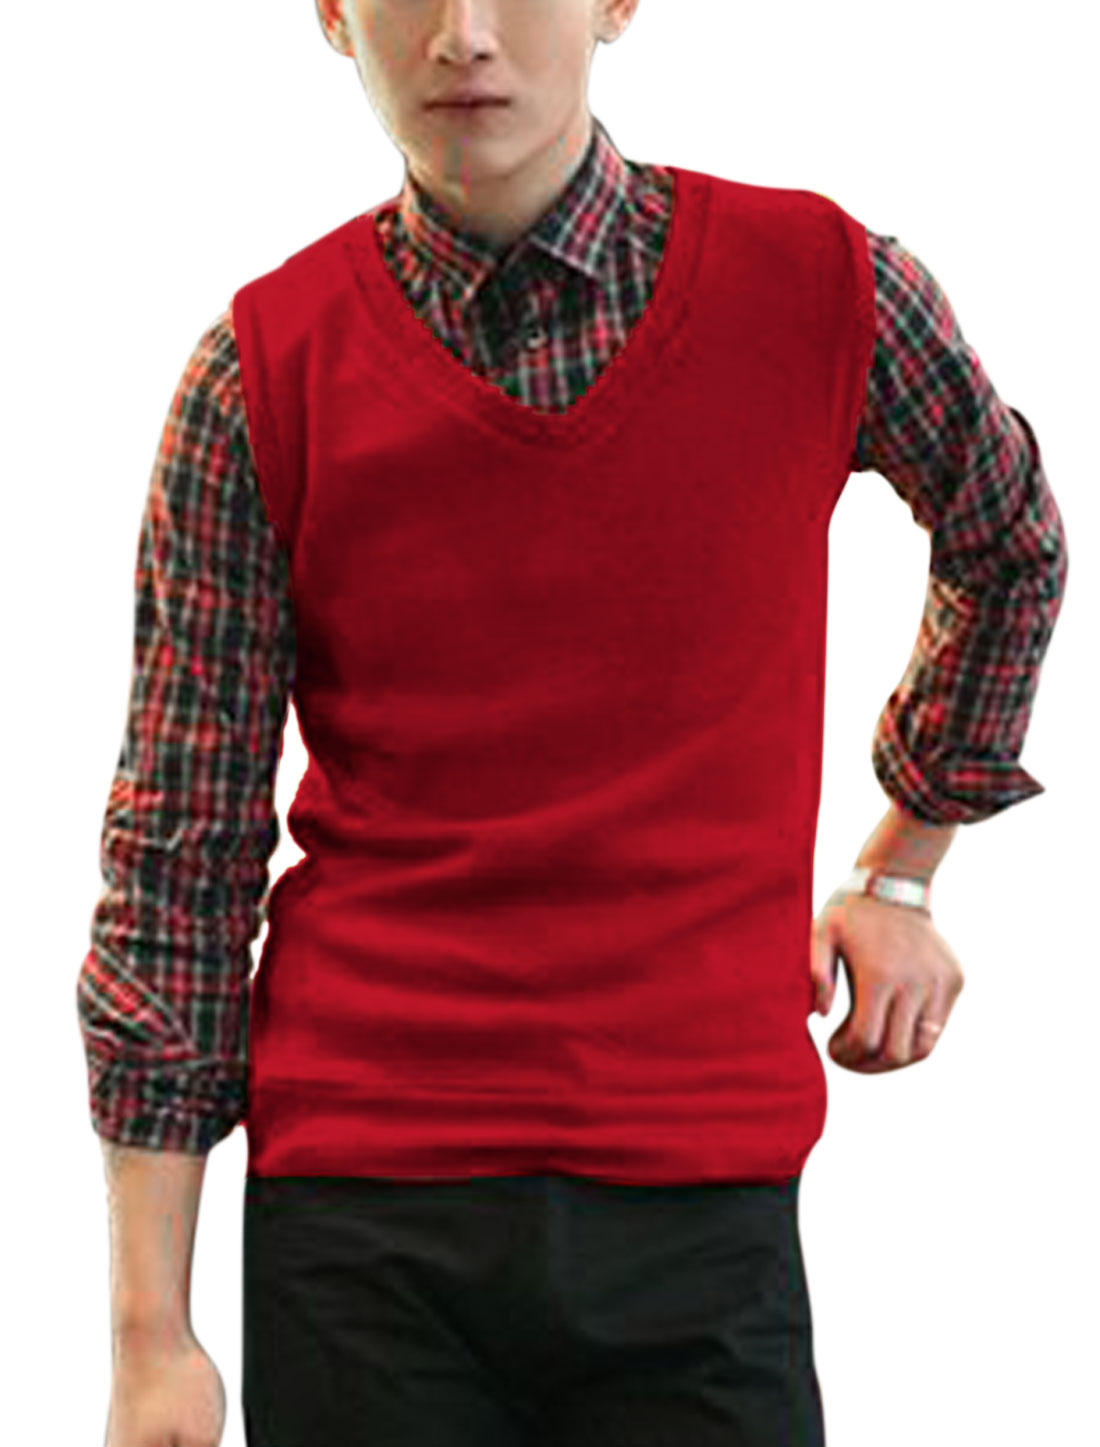 Soft Elastic V Neck Casual Knit Vests for Men Red M